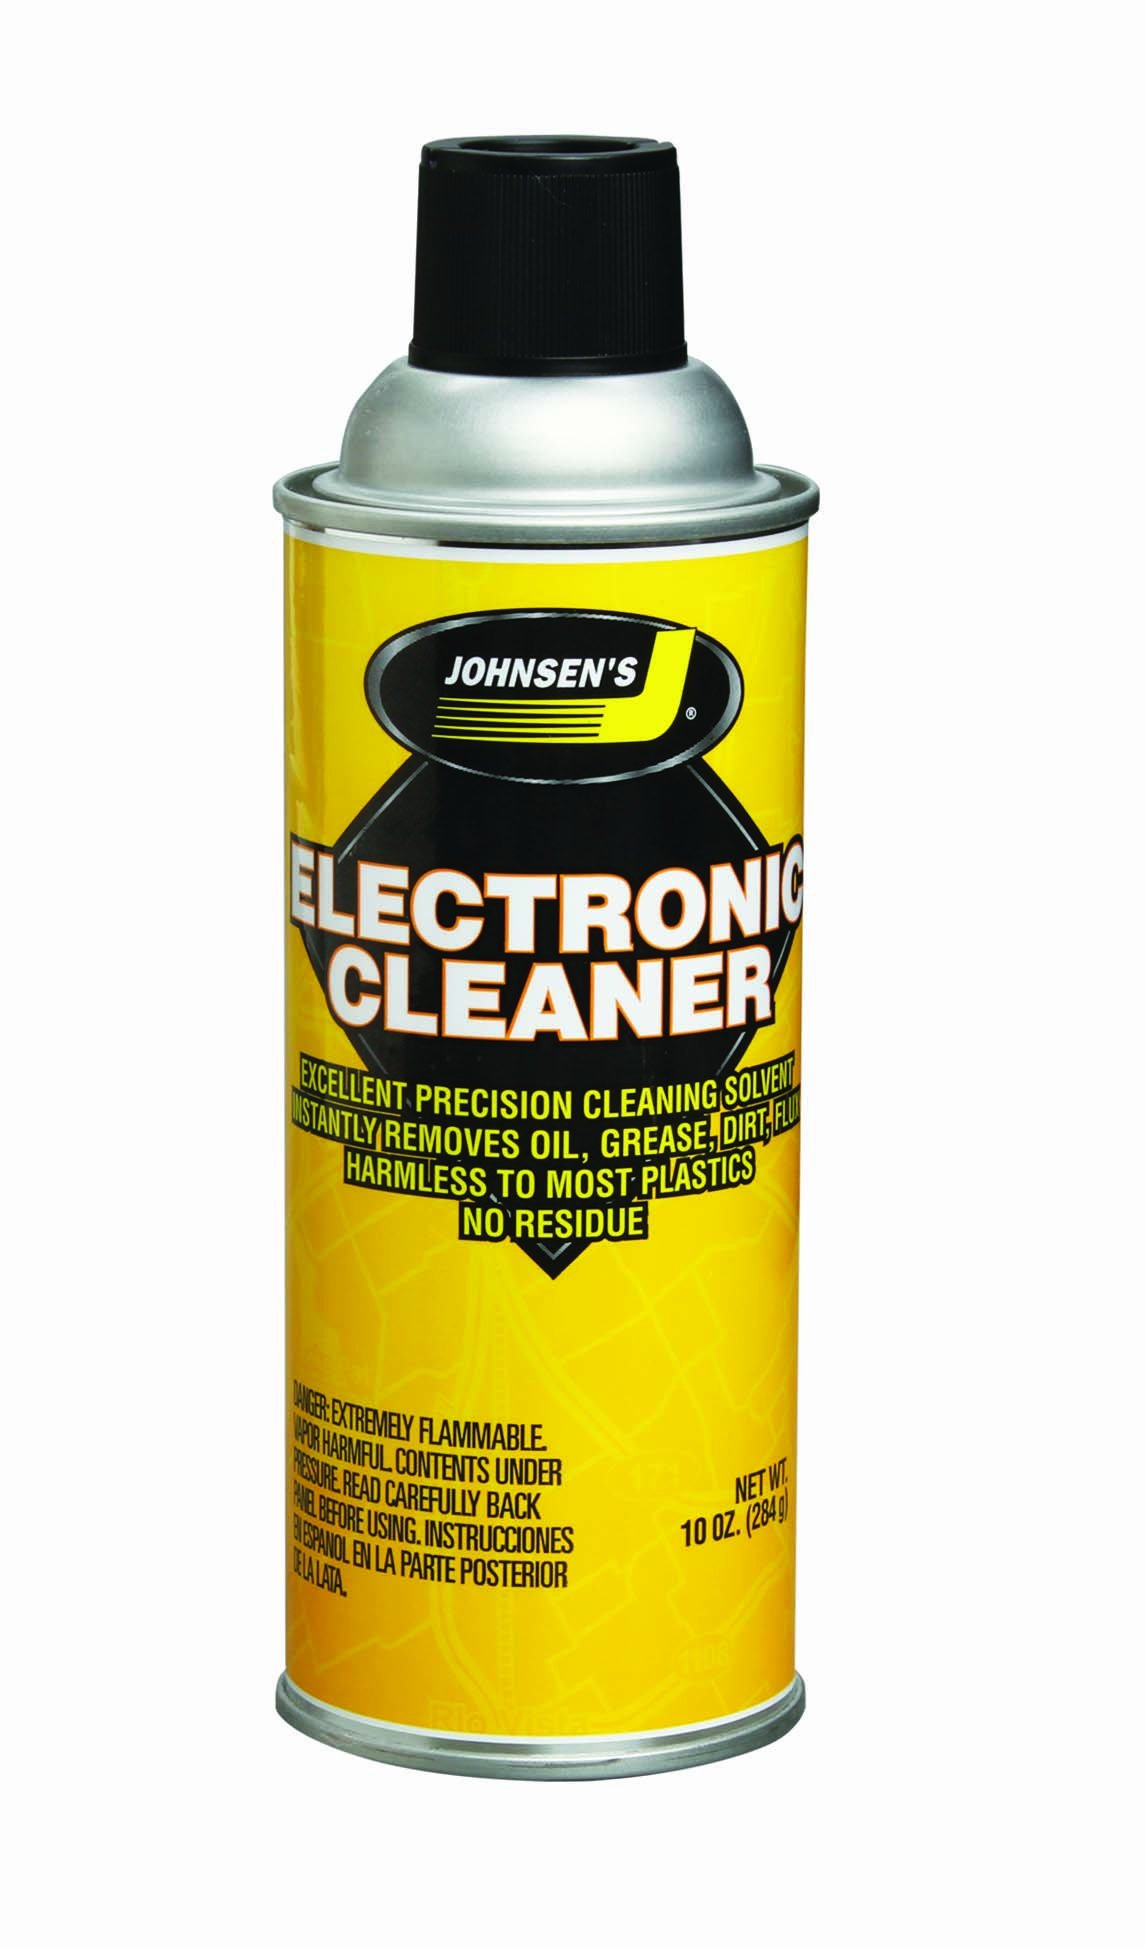 Johnsen's 4600-12PK Electronic Cleaner - 10 oz., (Pack of 12)